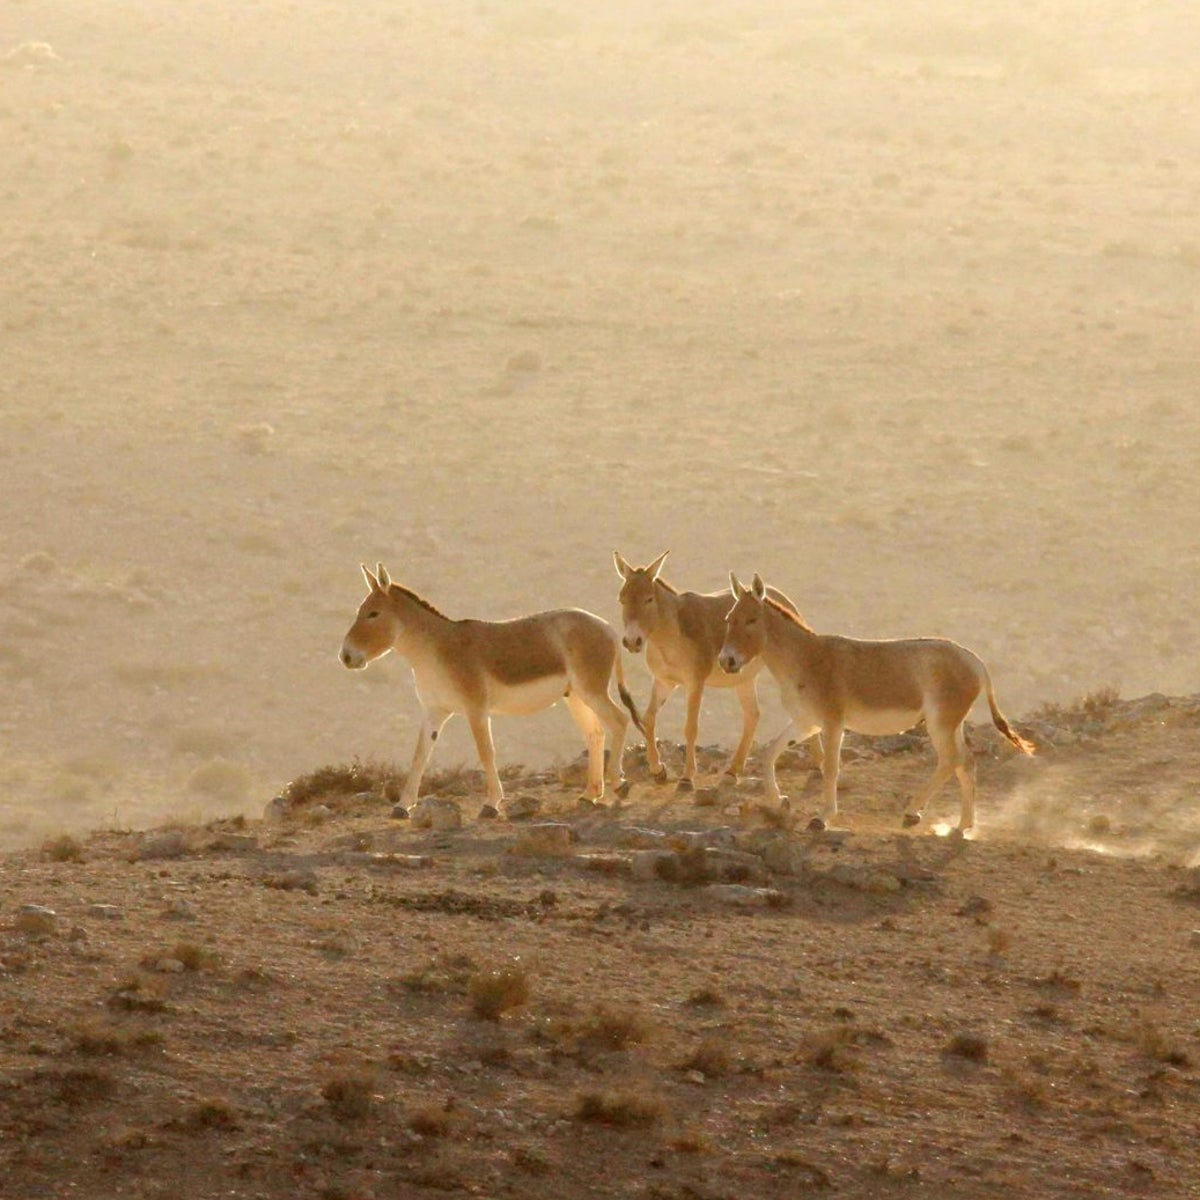 Wild asses in Makhtesh Ramon, Israel: Photograph shows three wild asses in sunset, standing on a gently sloping hillside. The environment is barren desert with low-lying ground-hugging scrubby plant life.